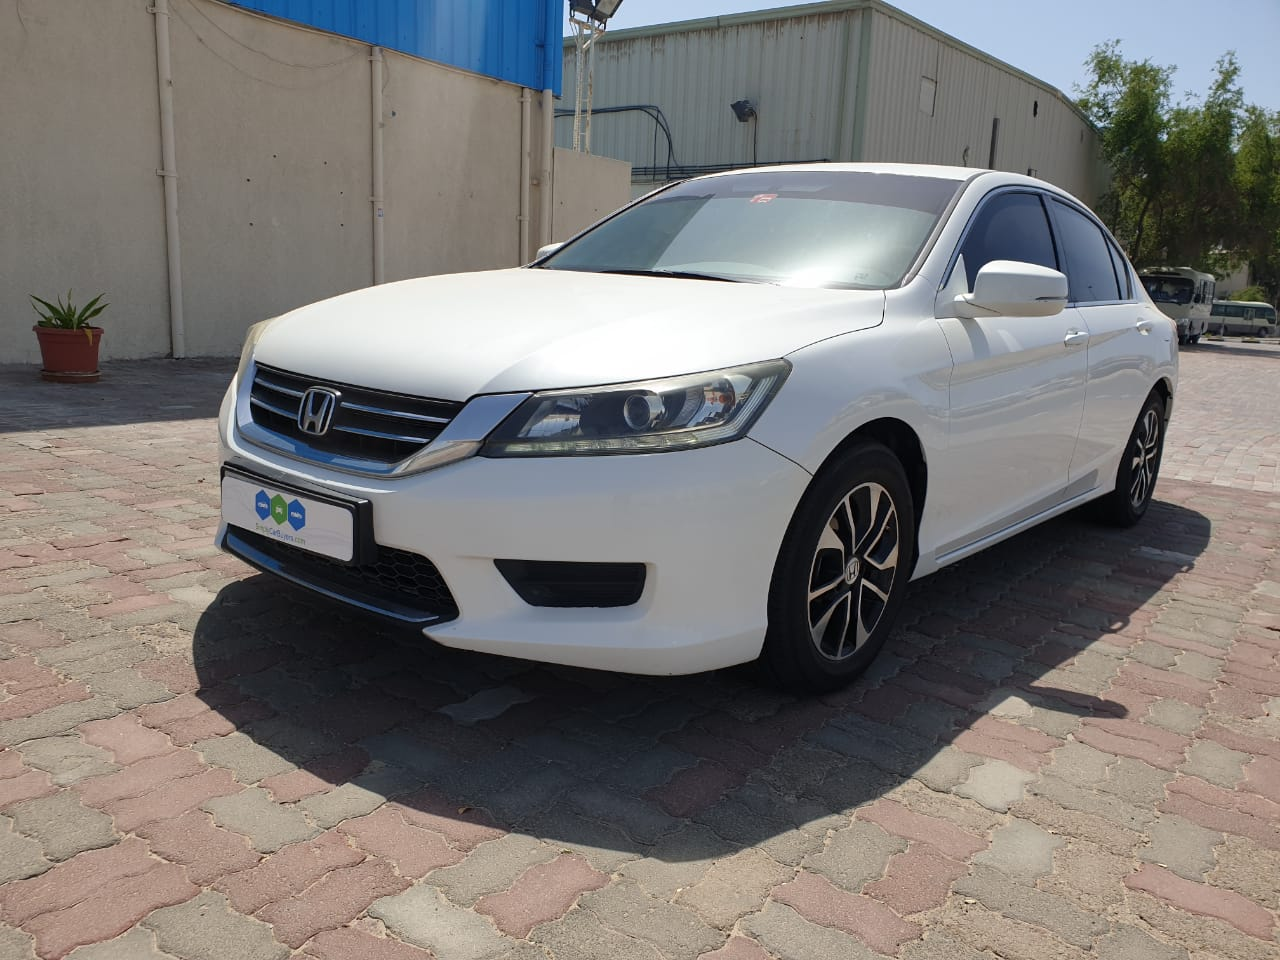 Used Honda Accord 2.4 LX 2013 For Sale In Dubai